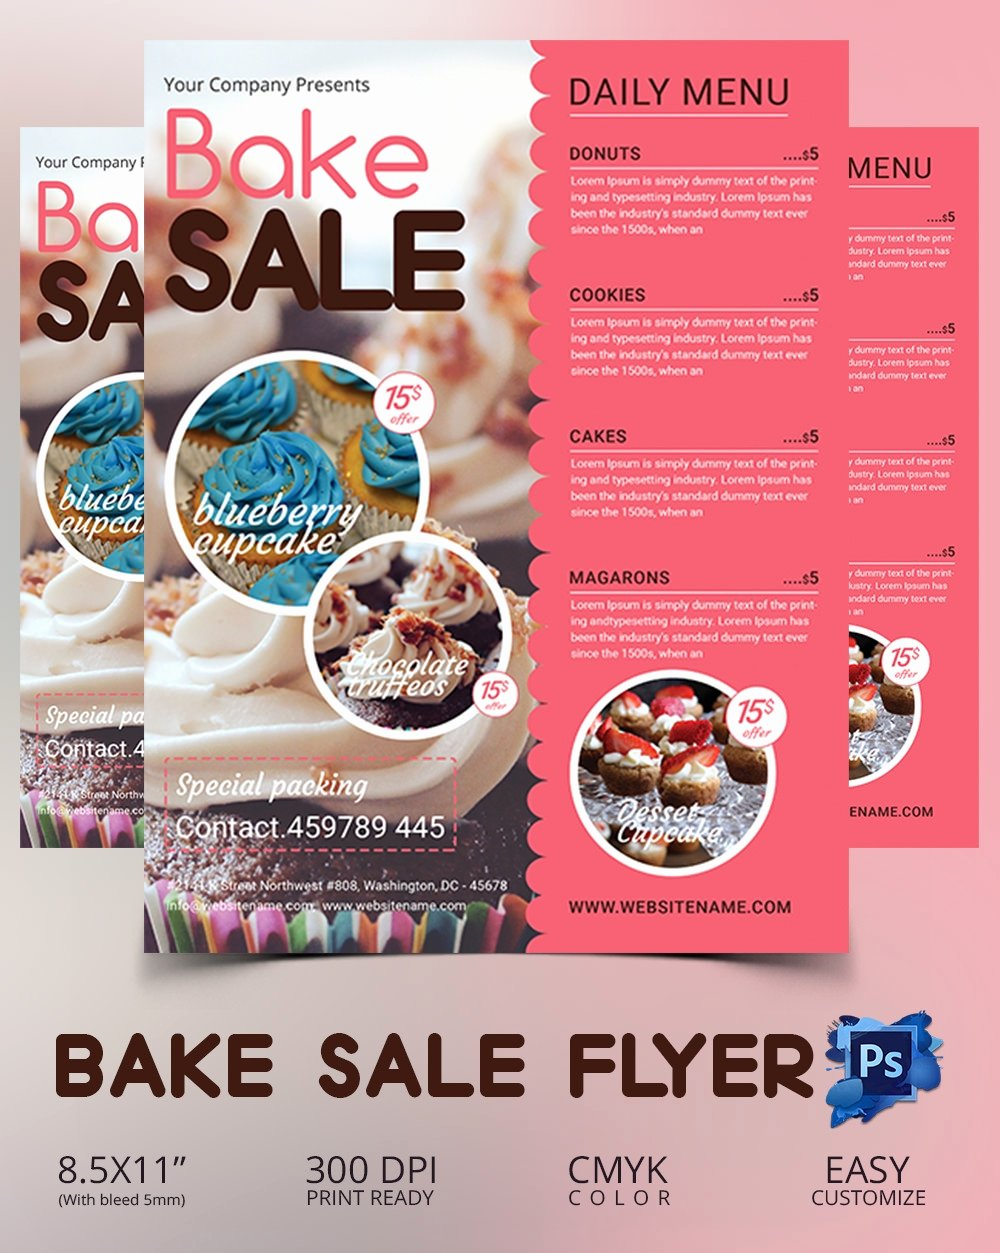 Bake Sale Flyer Template 34 Free Psd Indesign Ai